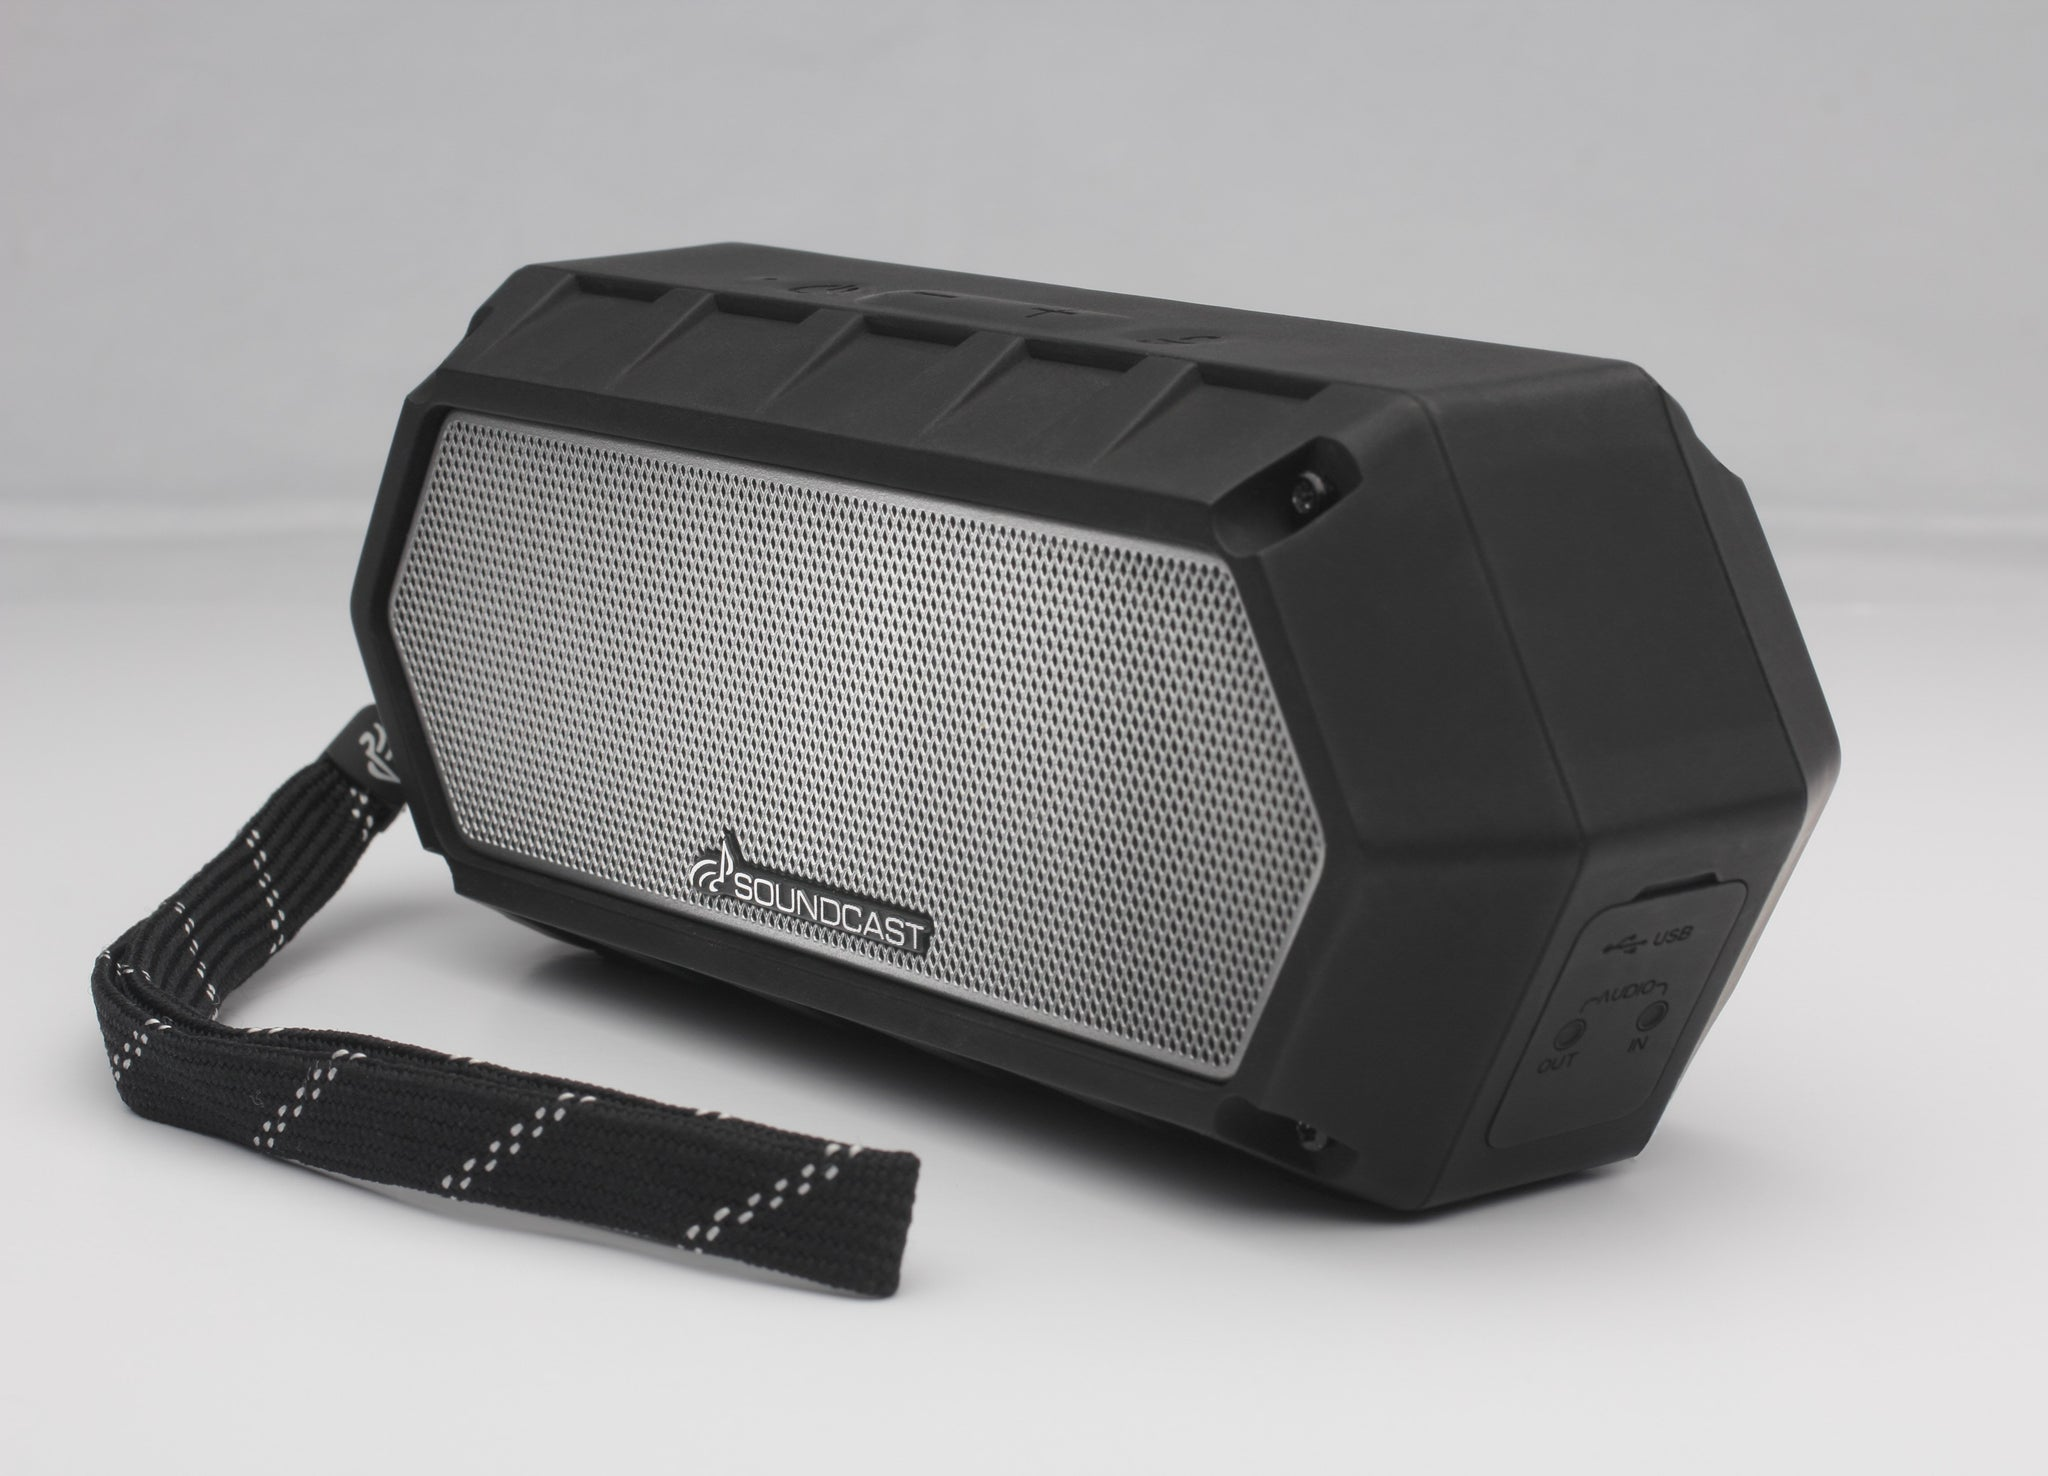 Soundcast VG1 Premium Waterproof Bluetooth Speaker